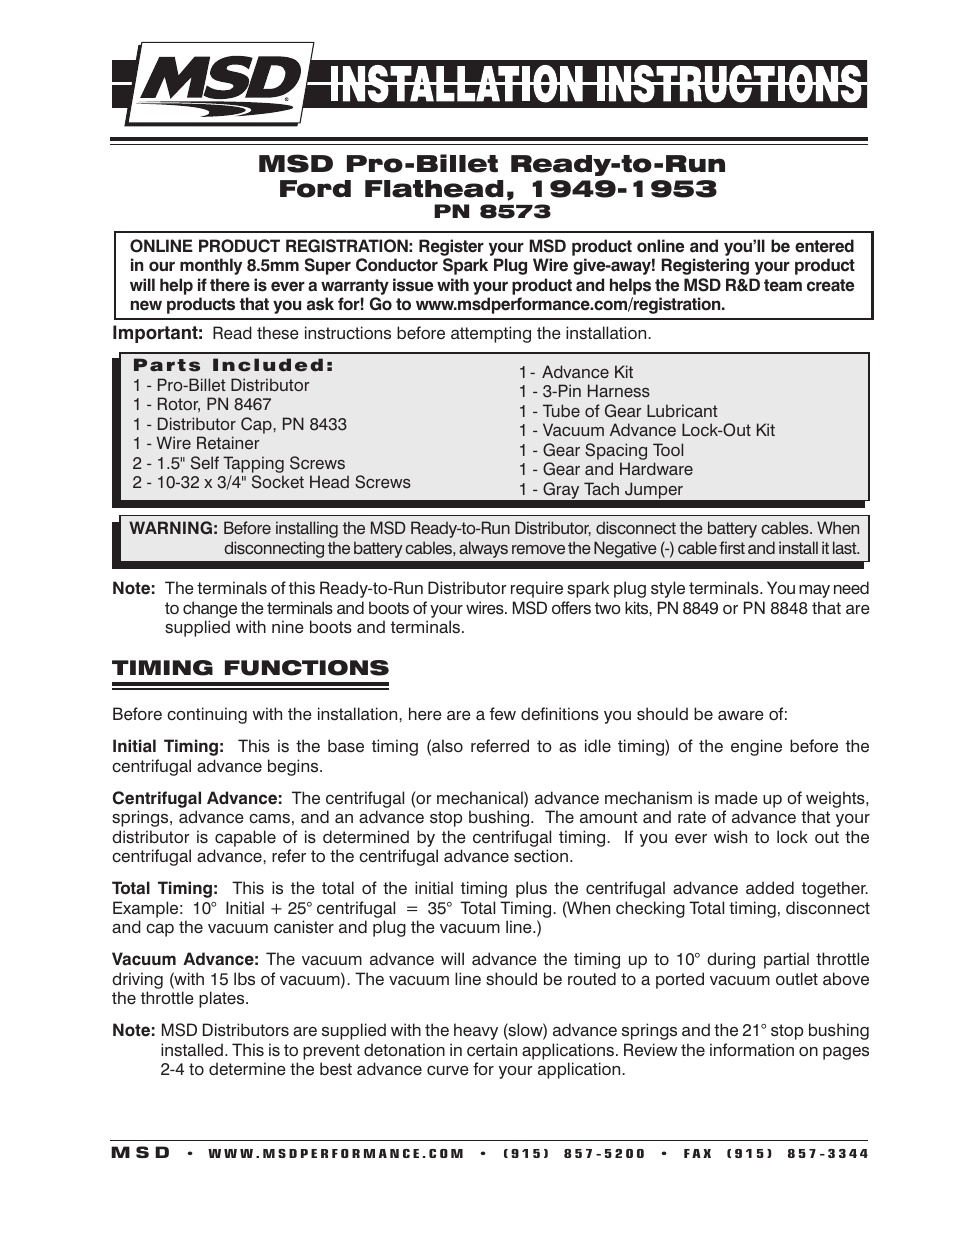 msd 8573 flathead ford ready to run distributor for 49 53 msd 8573 flathead ford ready to run distributor for 49 53 installation user manual 8 pages